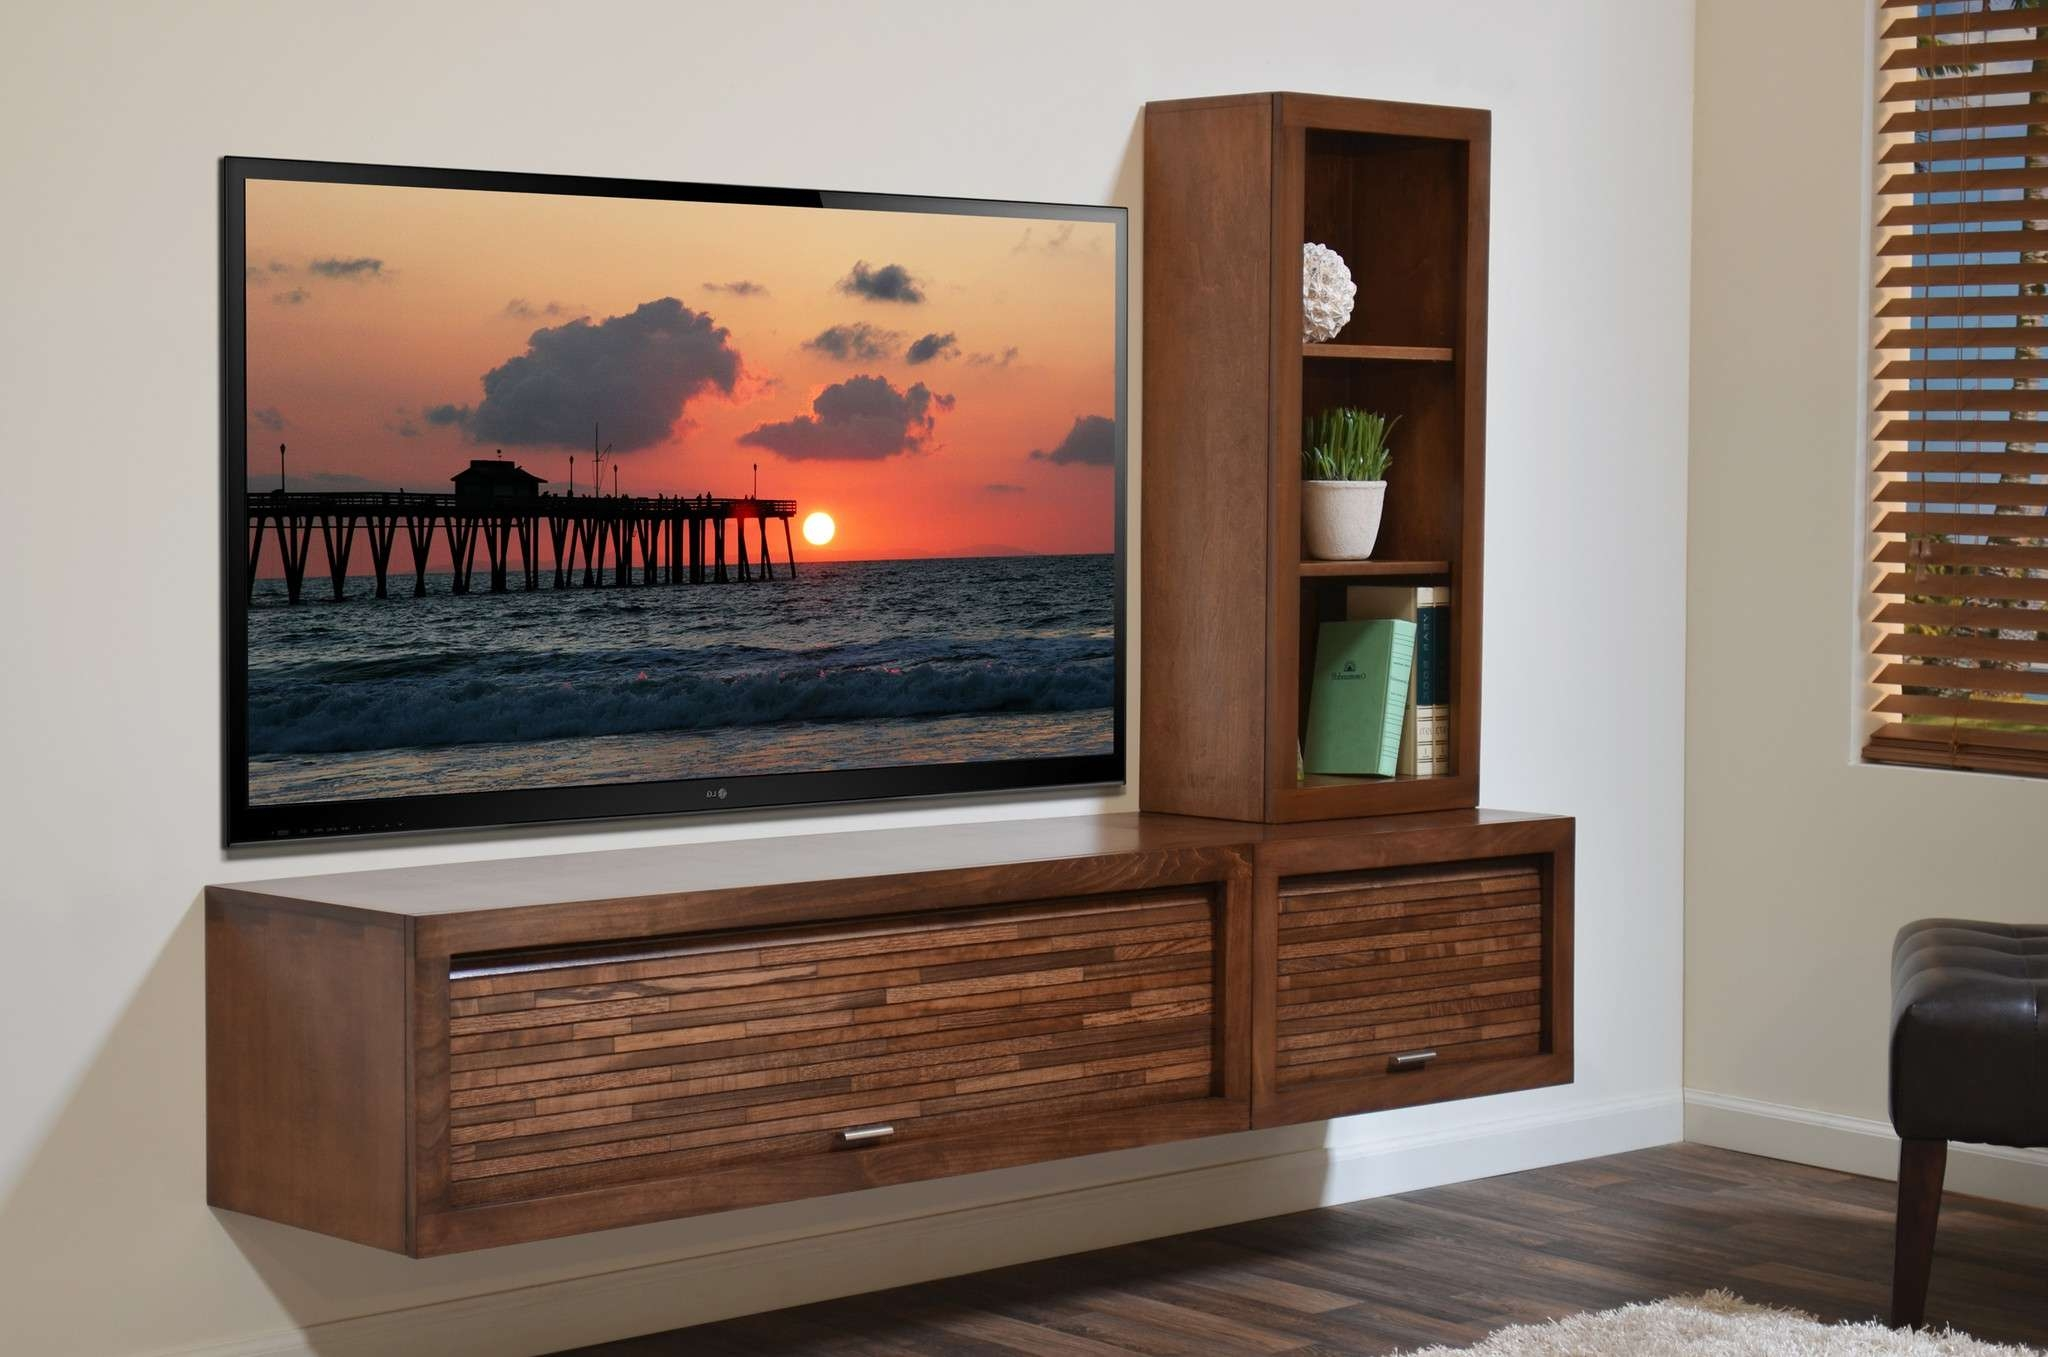 Home Decor : Wall Mounted Flat Screen Tv Cabinet Small Backyard Within Wall Mounted Tv Cabinets For Flat Screens (View 9 of 20)